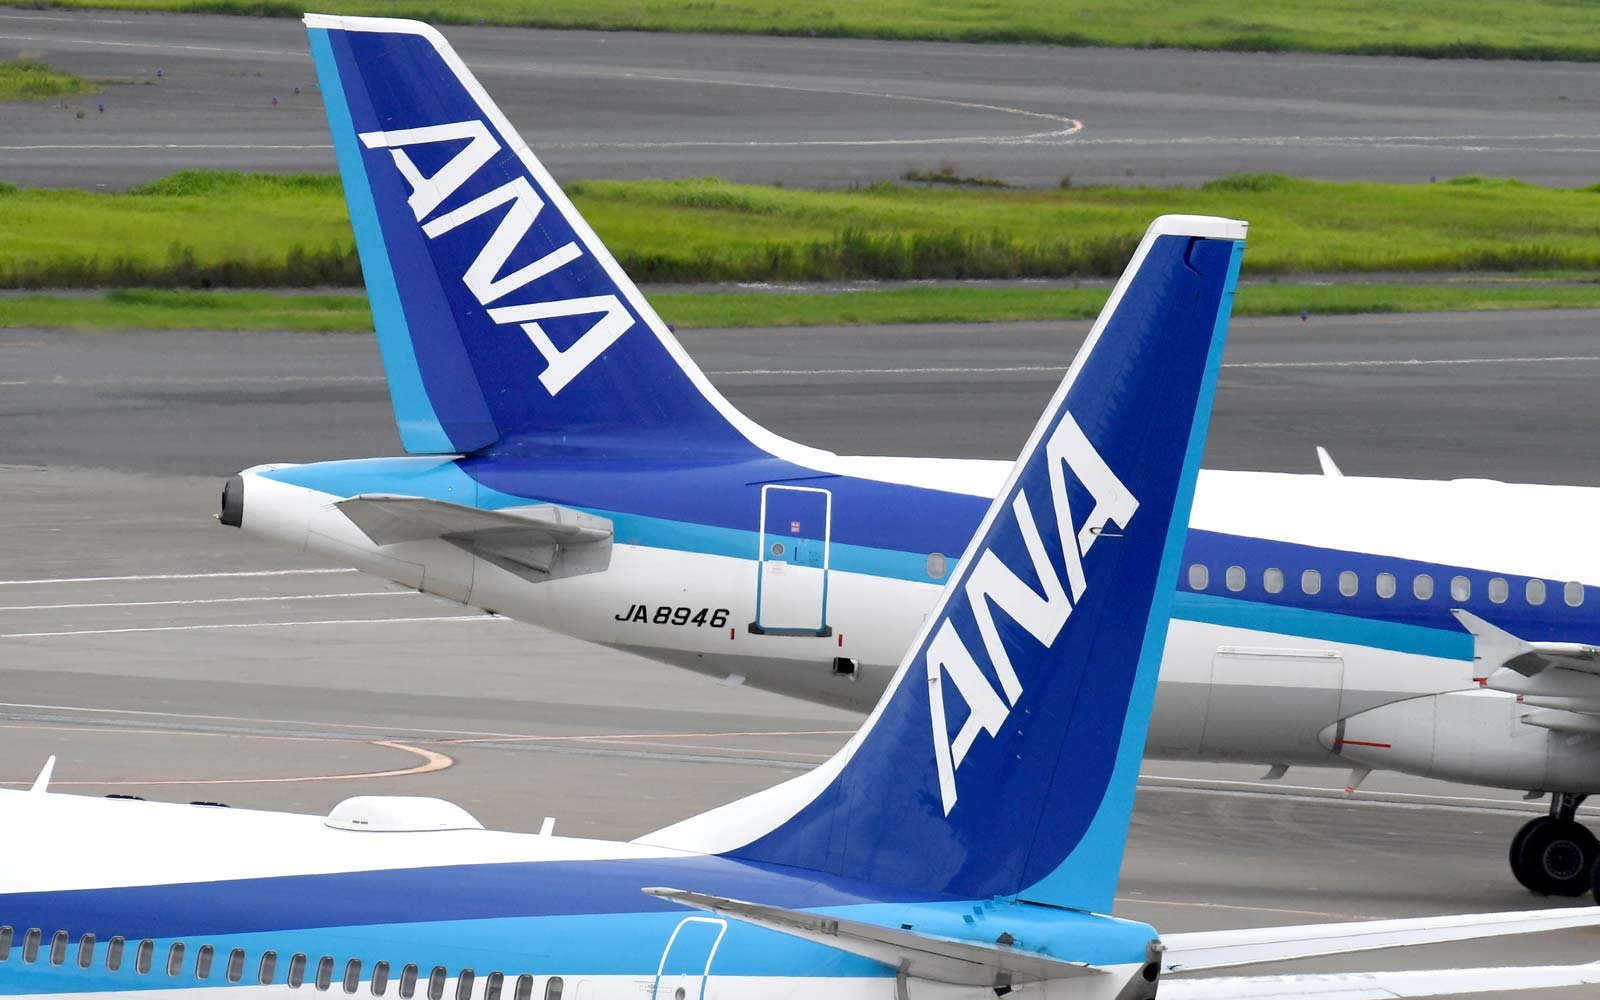 All Nippon Airways (ANA) jetliners on the Tarmac and Haneda International Airport